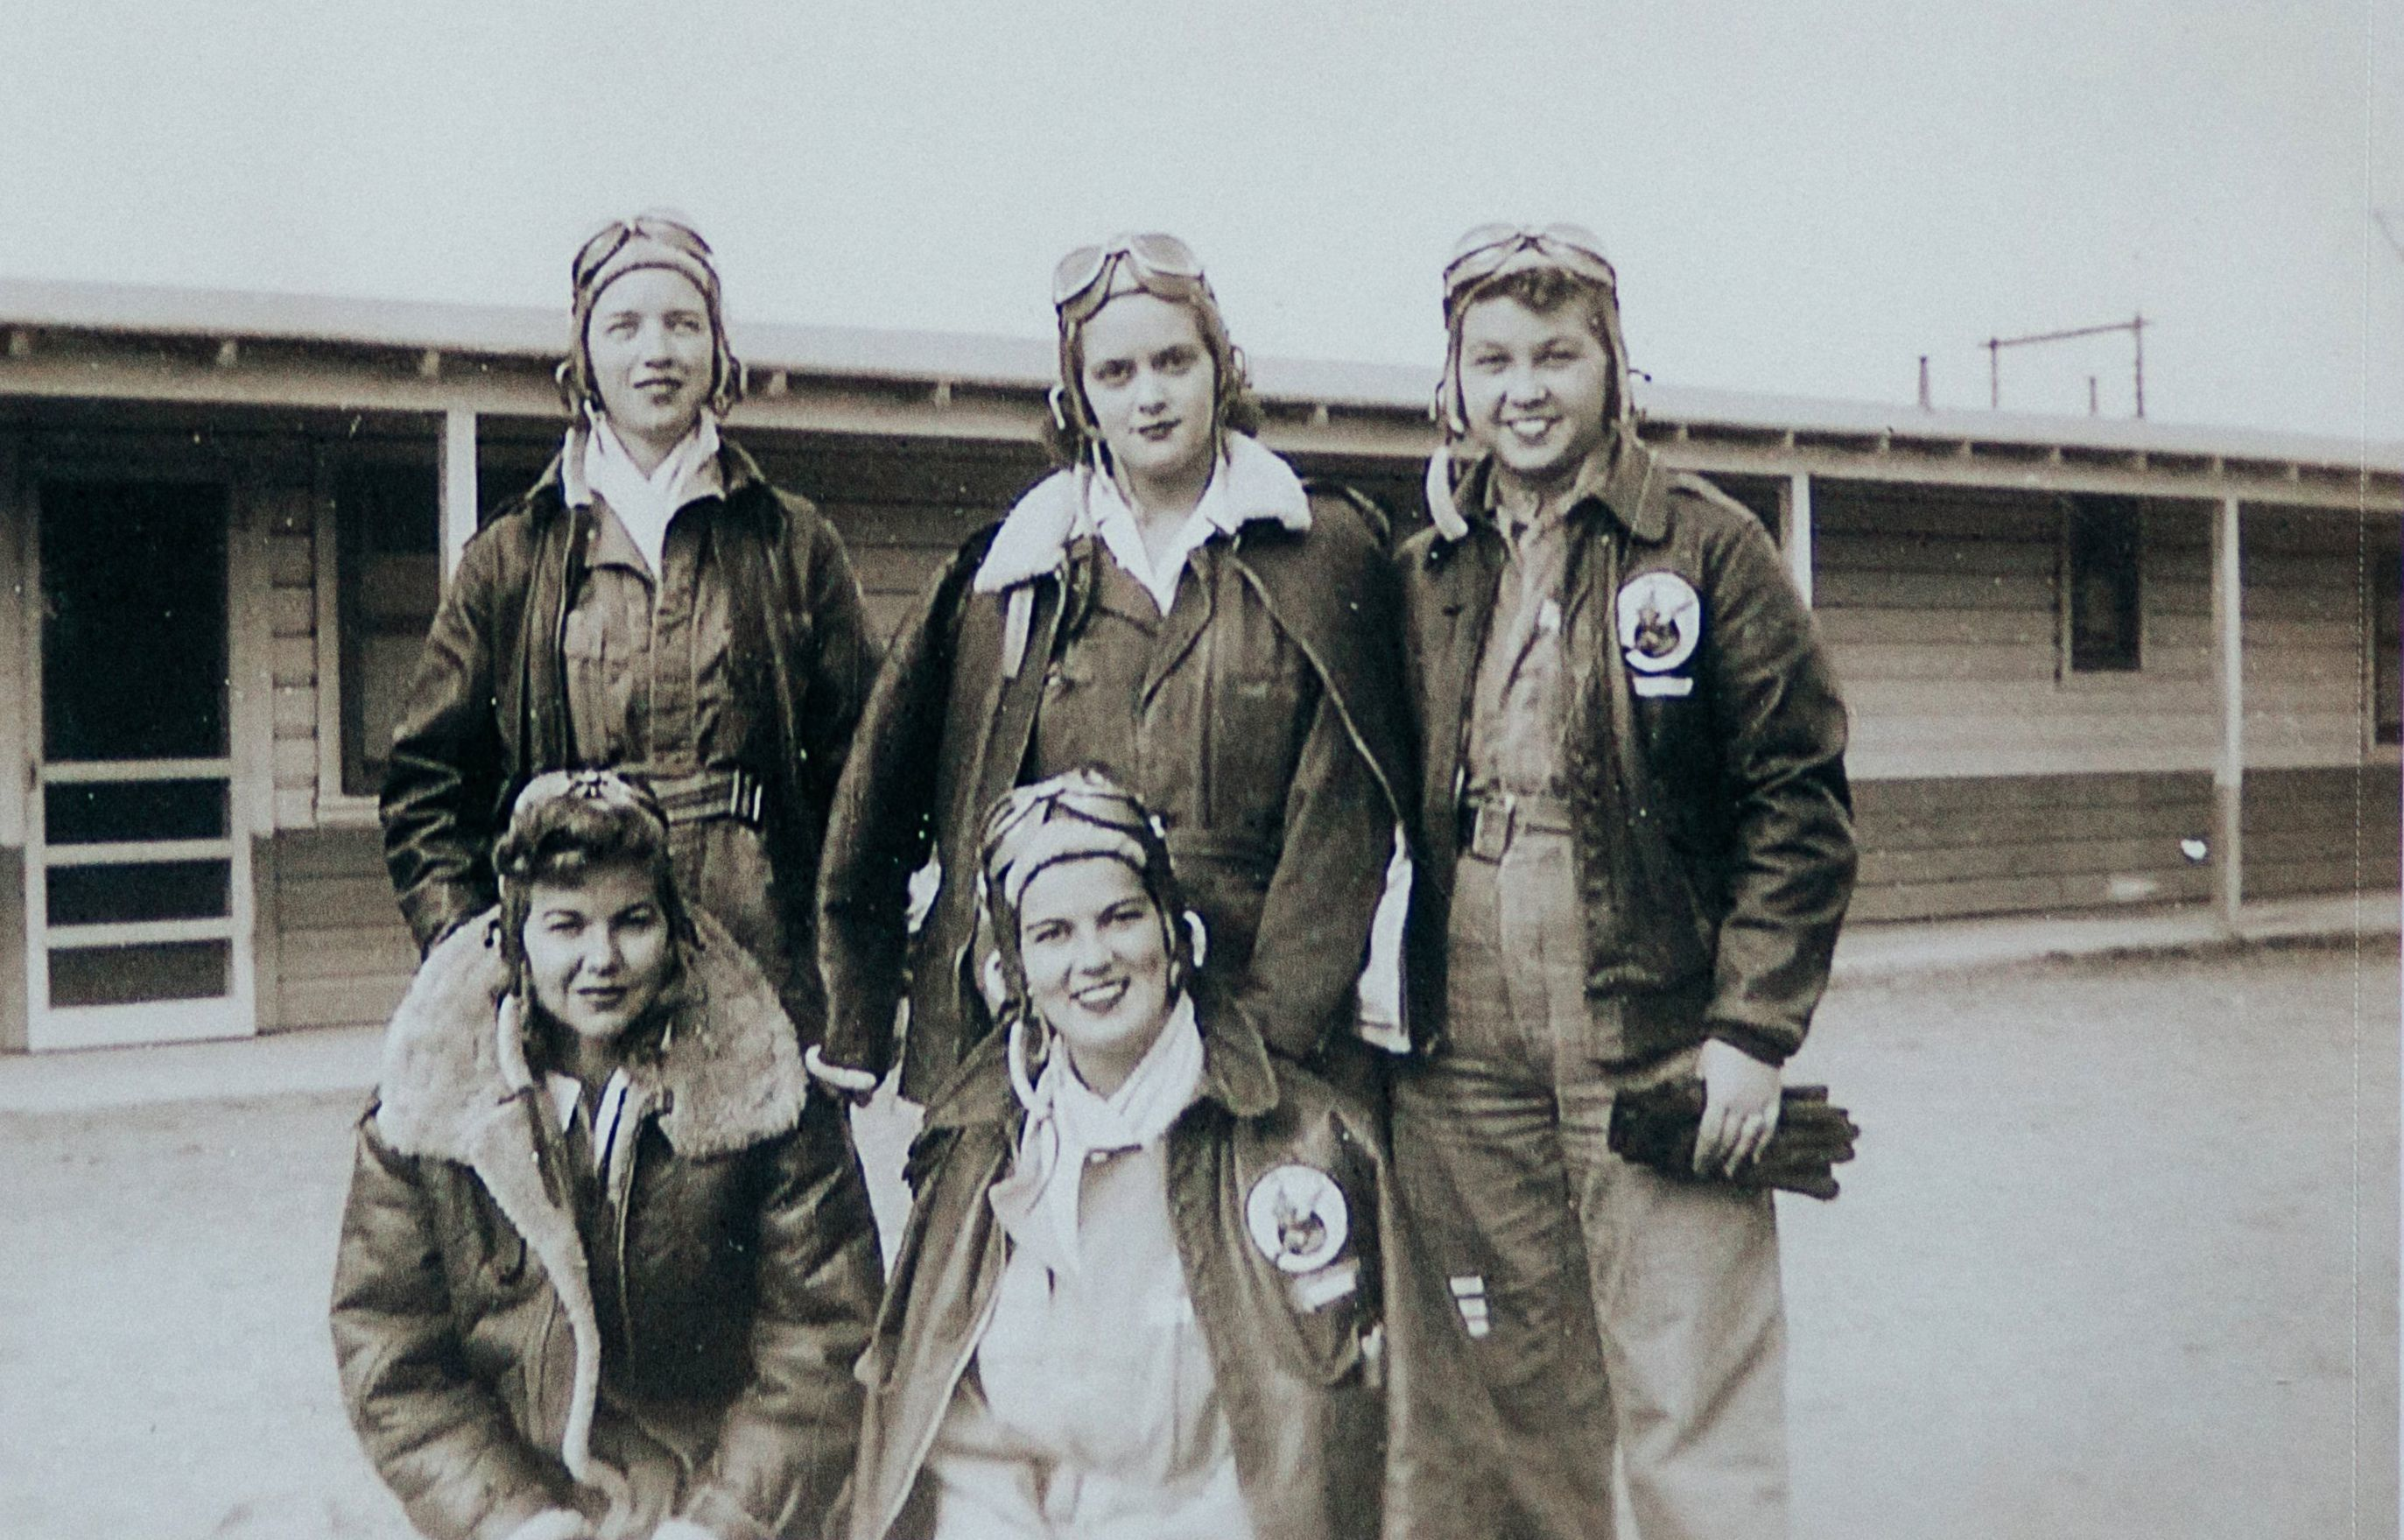 Cadets from the Class 44-W-4, from top left, Dorothy Allen, Mildred (Jane) Baessler (Doyle), and Odean Bishop, from bottom left, Ina Barley and Stella Jo Baker at Avenger Field in Sweetwater, Texas.